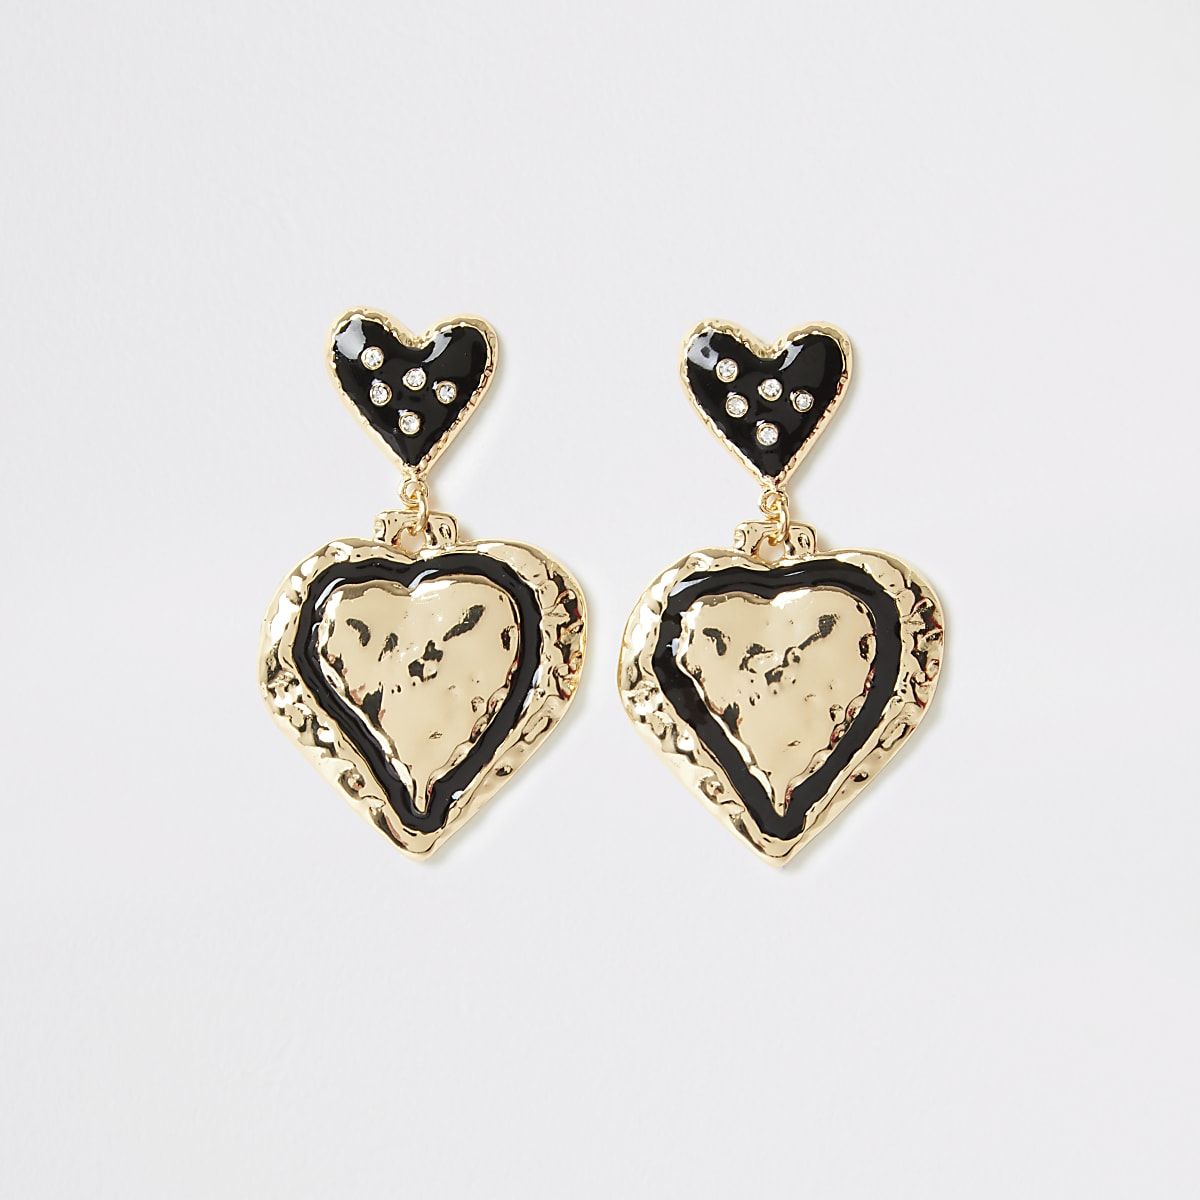 Gold color heart drop earrings